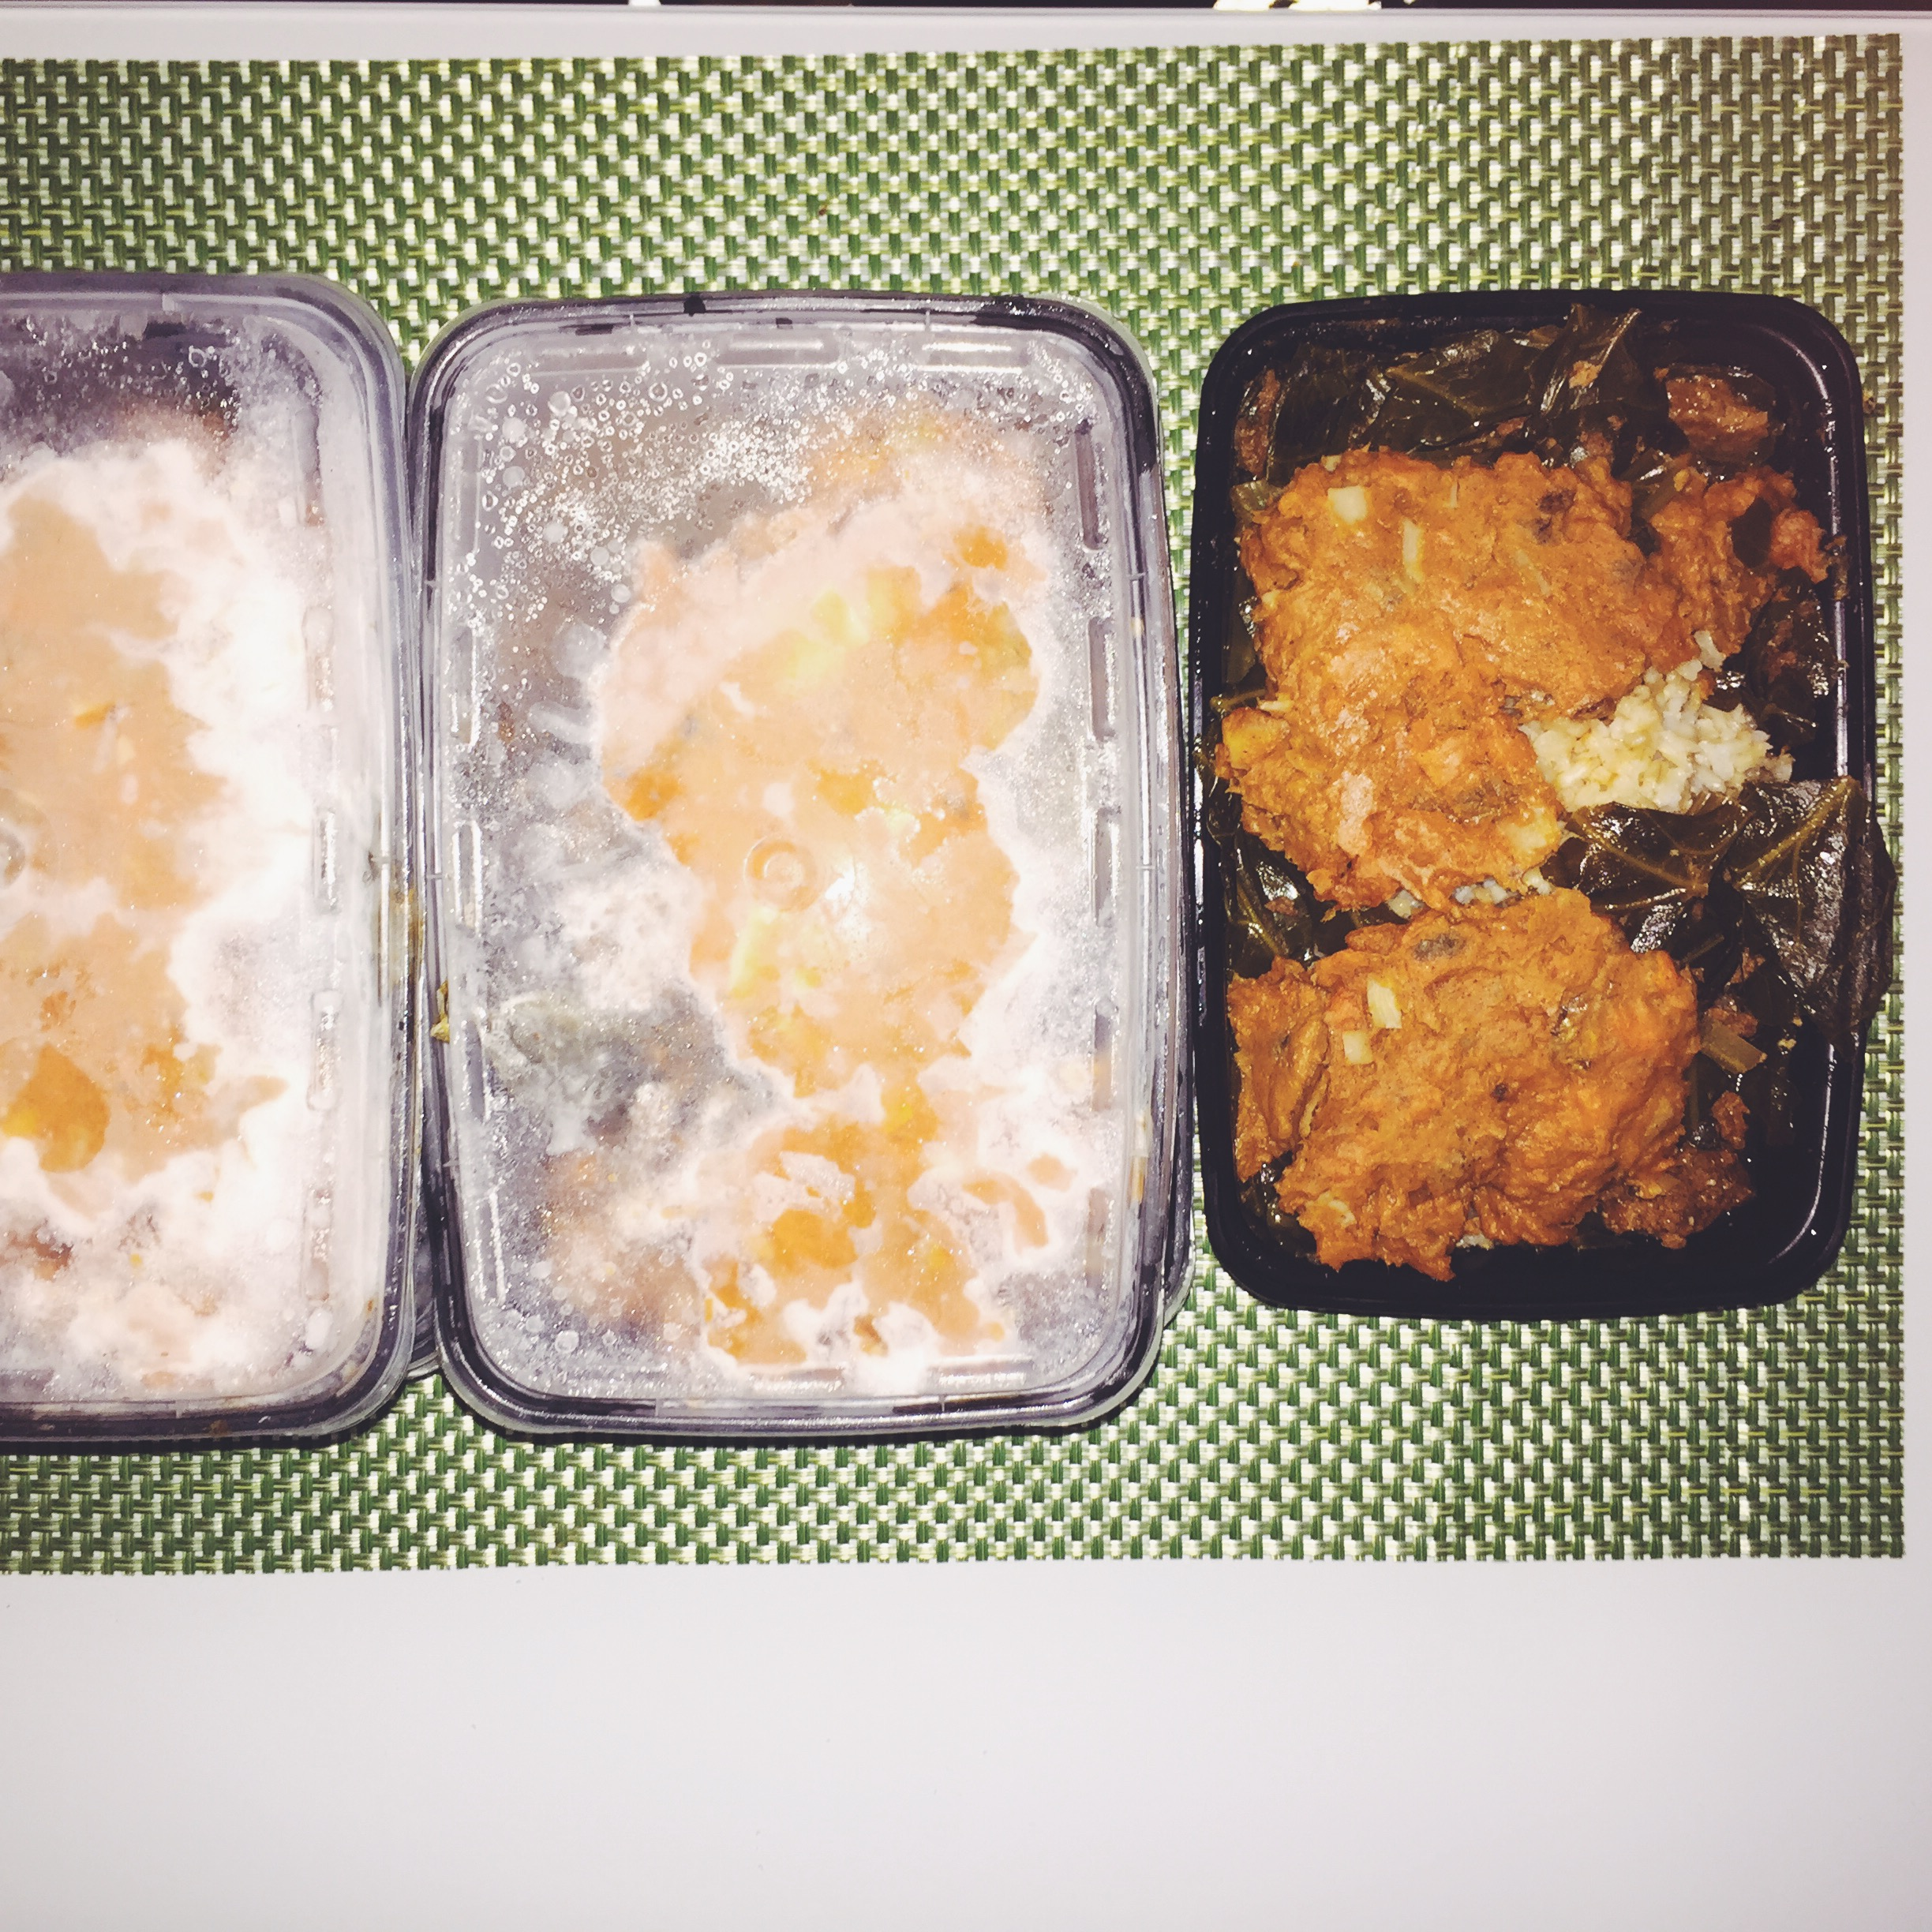 Meal Prep involves making meals for the week and freezing them for later for quick access.